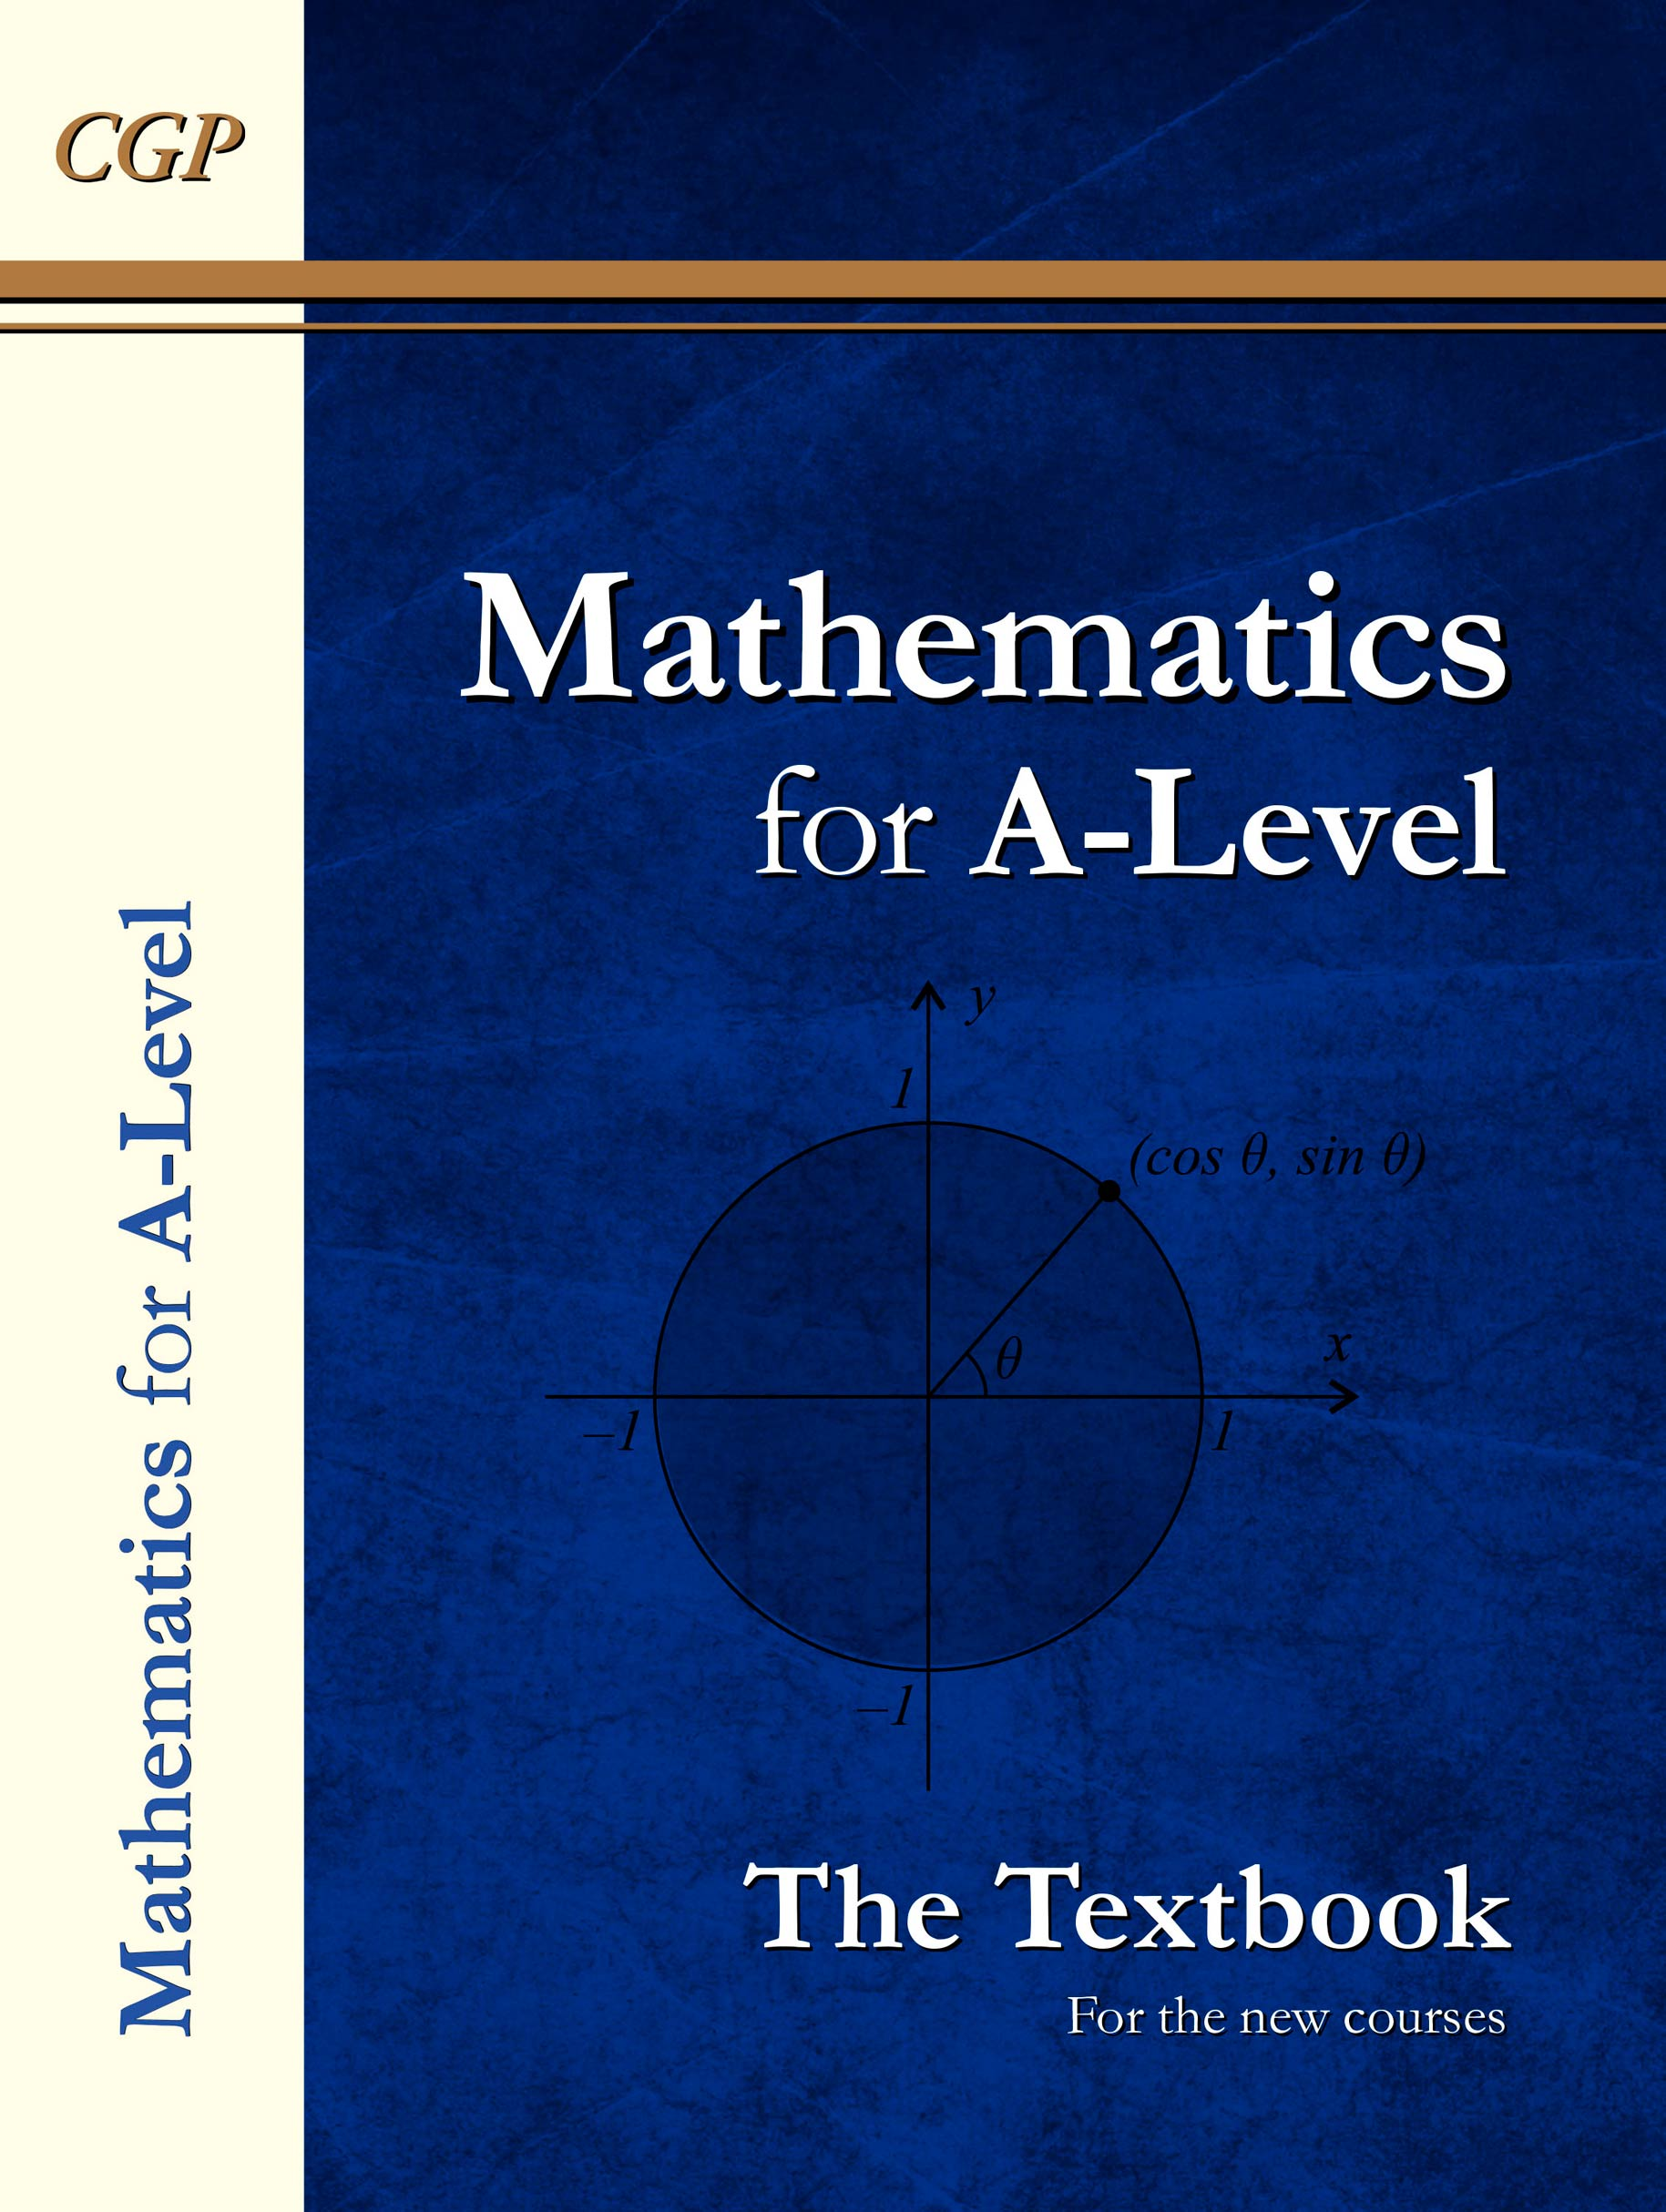 MHN71DK - New A-Level Maths Textbook: Year 1 & 2